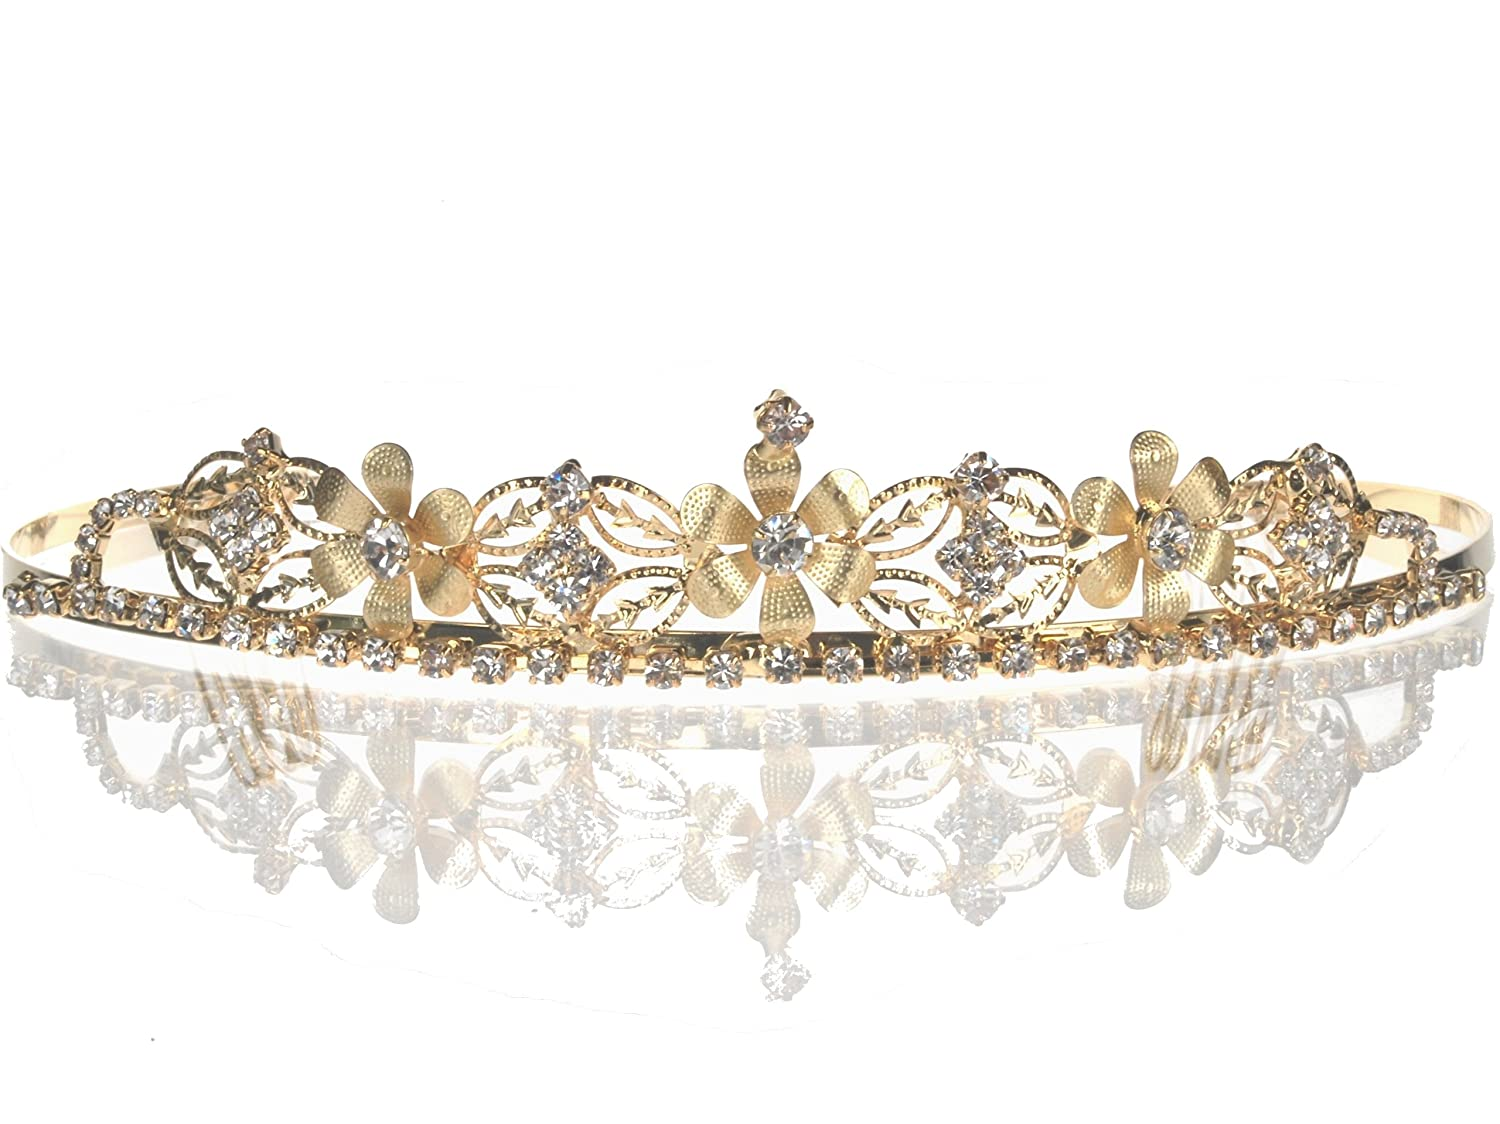 Bridal Wedding Tiara Crown With Gold Flowers 4652G5